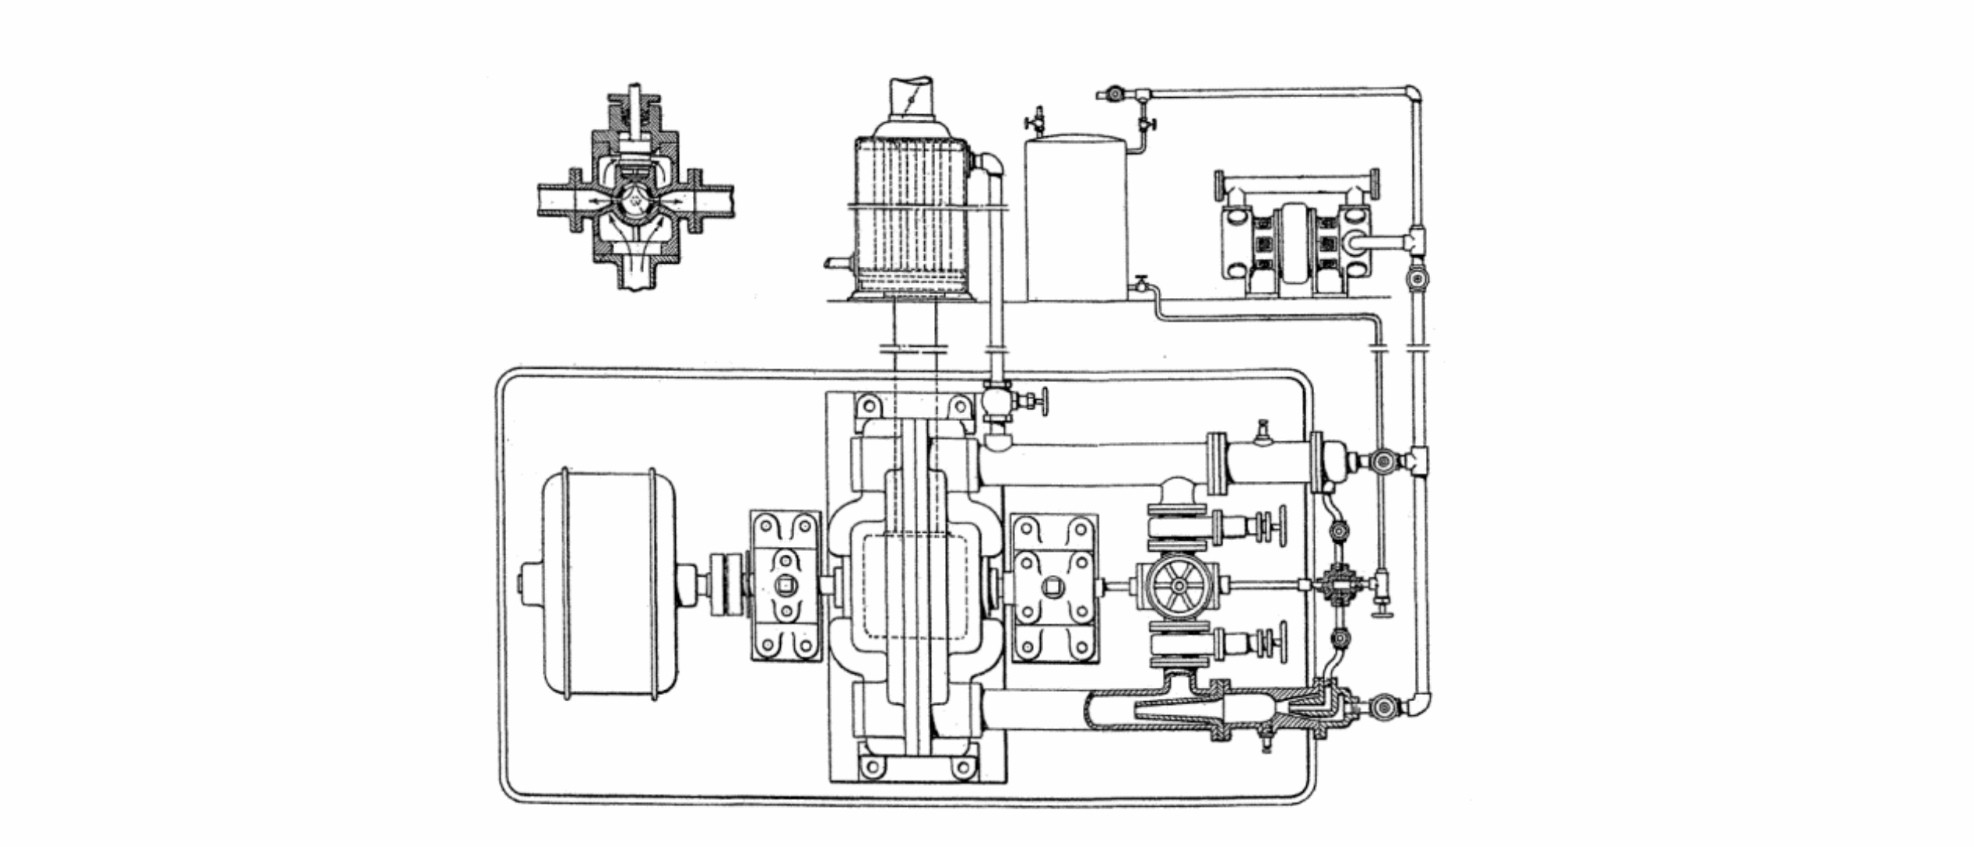 Nikola Teslas Revolutionary Turbine Still Lies Untouched Heres Gasoline Powered Engine Diagram Engines Tesla System